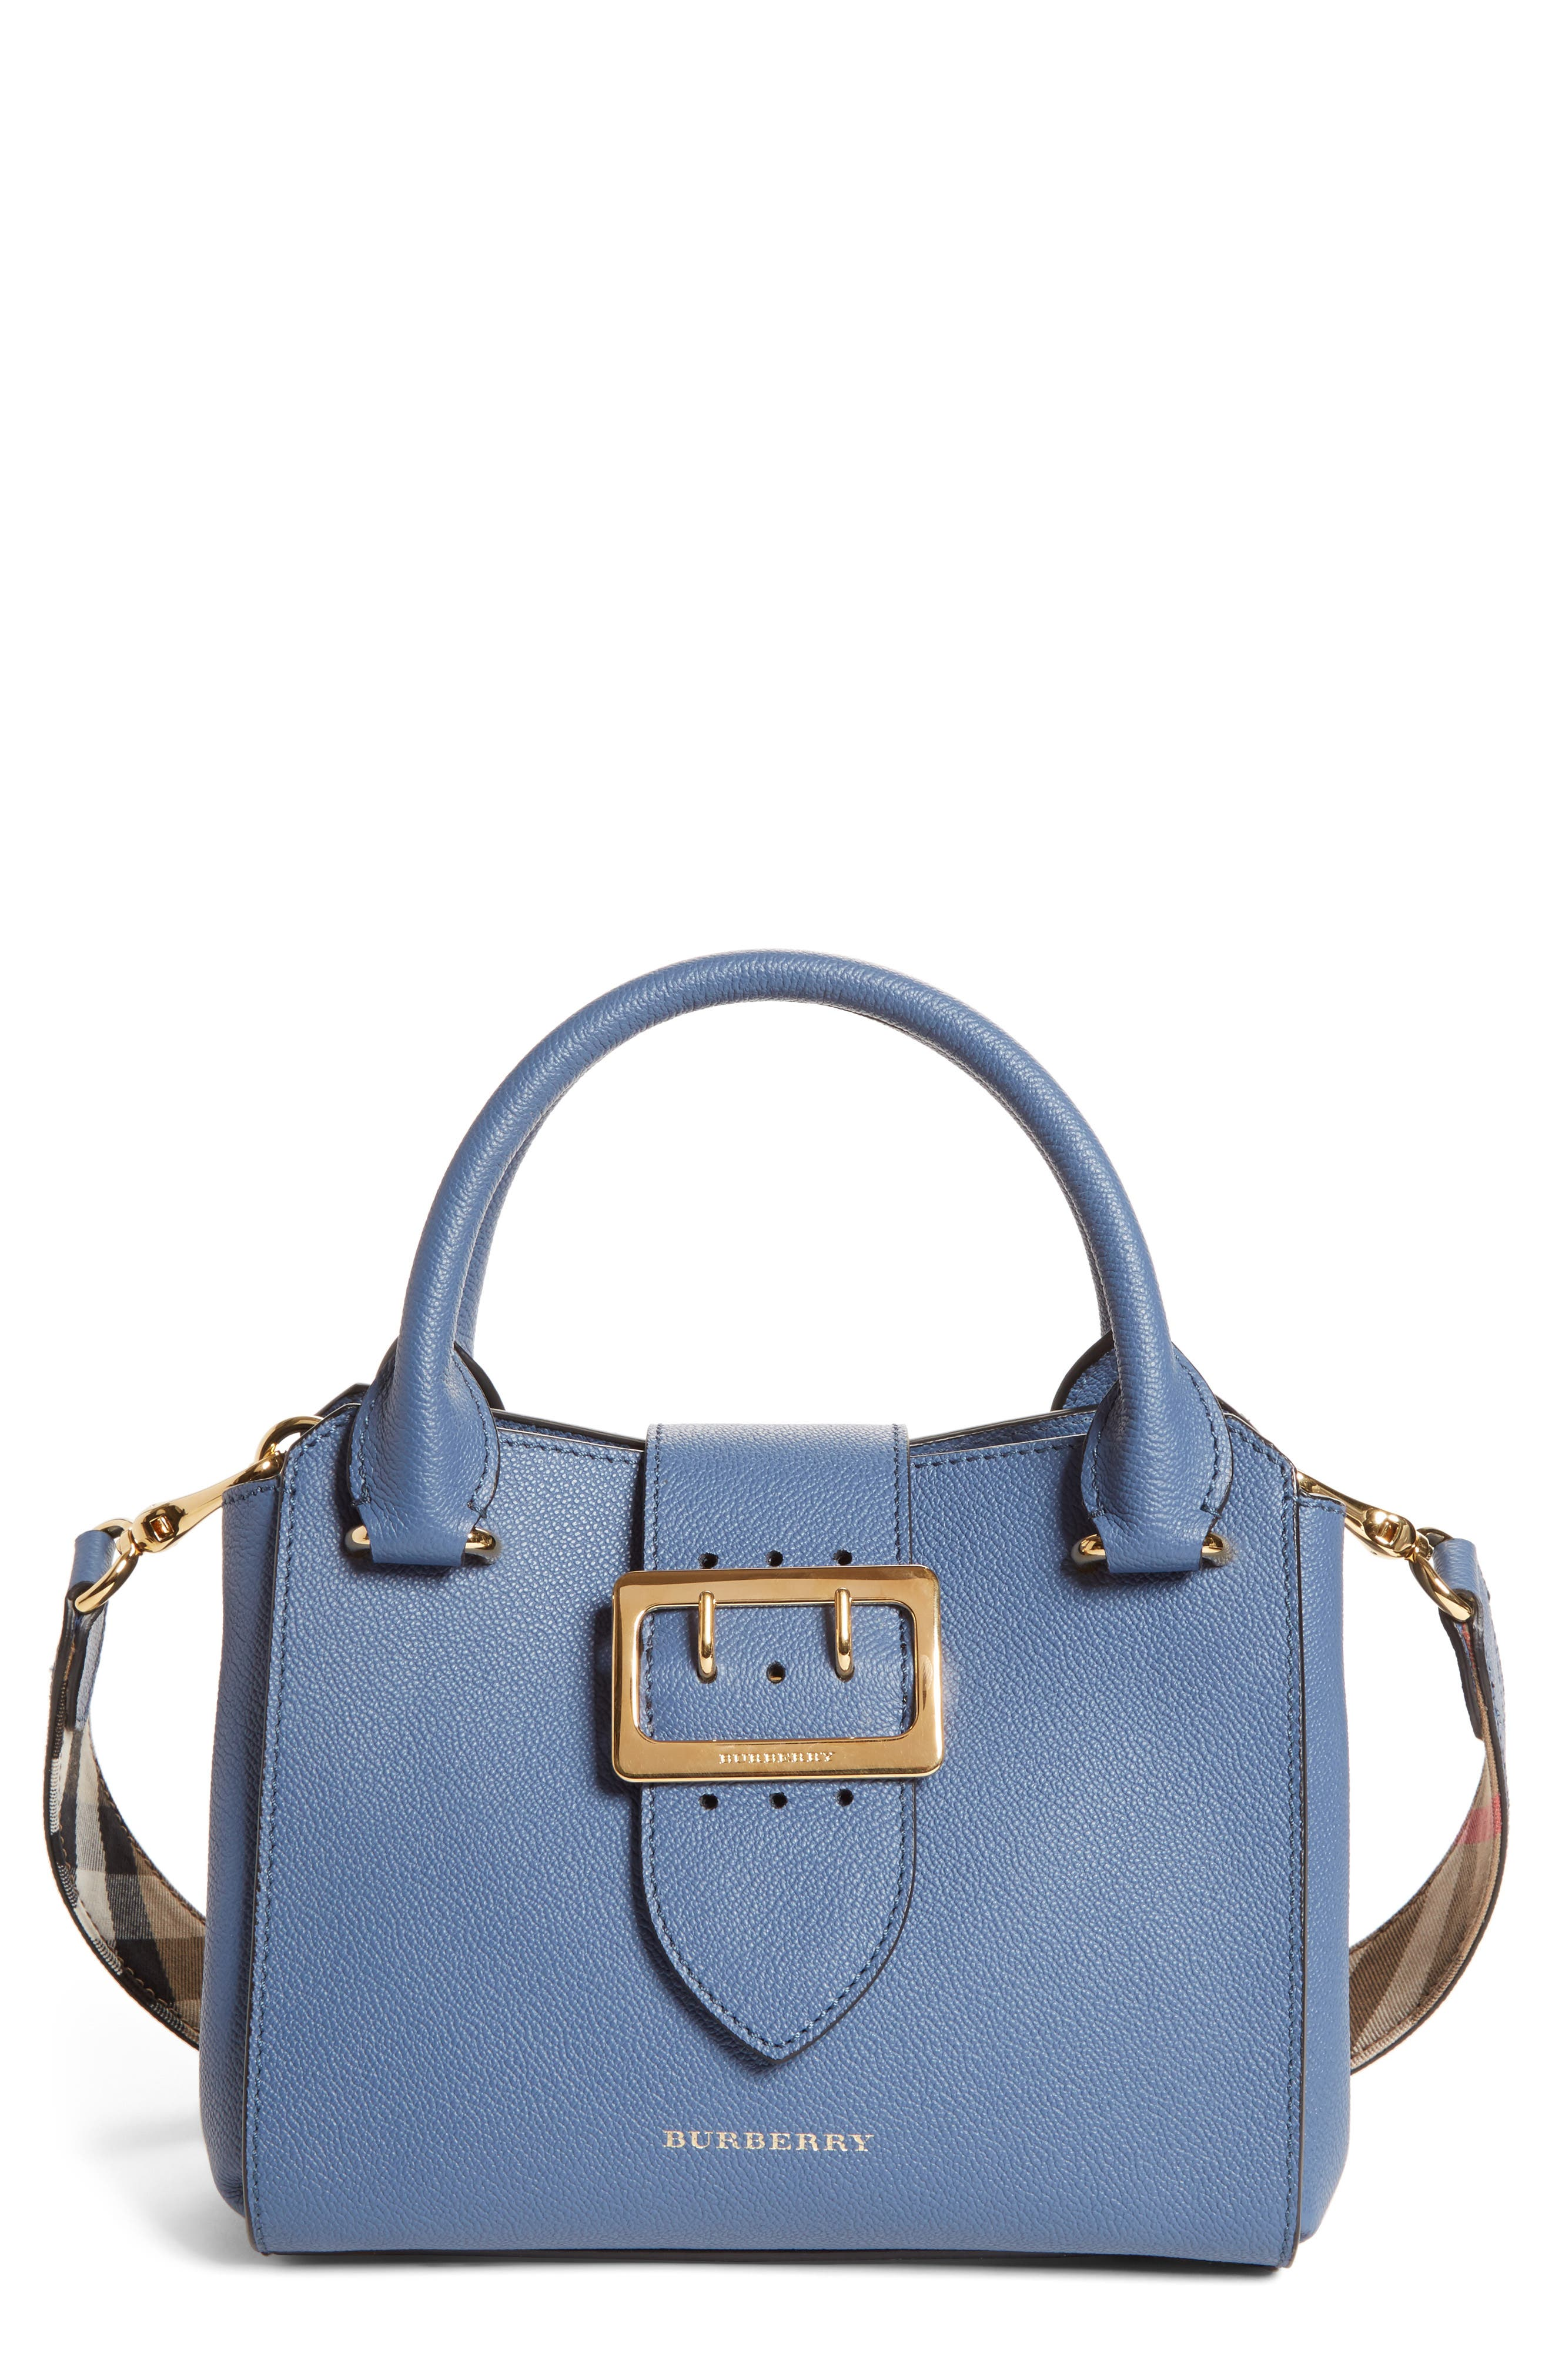 Alternate Image 1 Selected - Burberry Small Buckle Leather Satchel